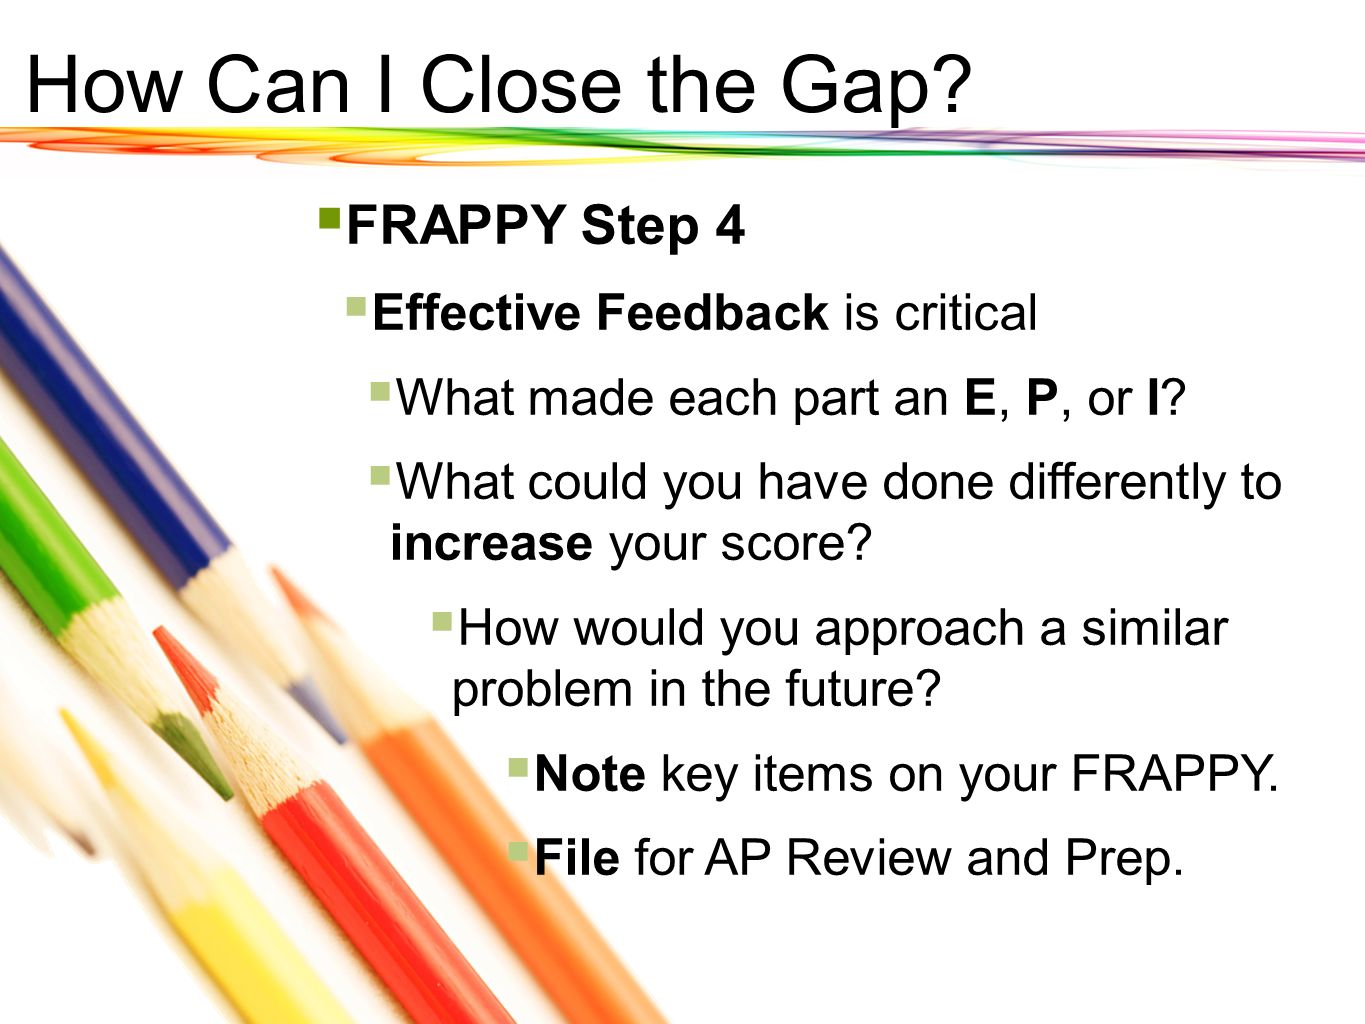 How Can I Close the Gap FRAPPY Step 4 Effective Feedback is critical